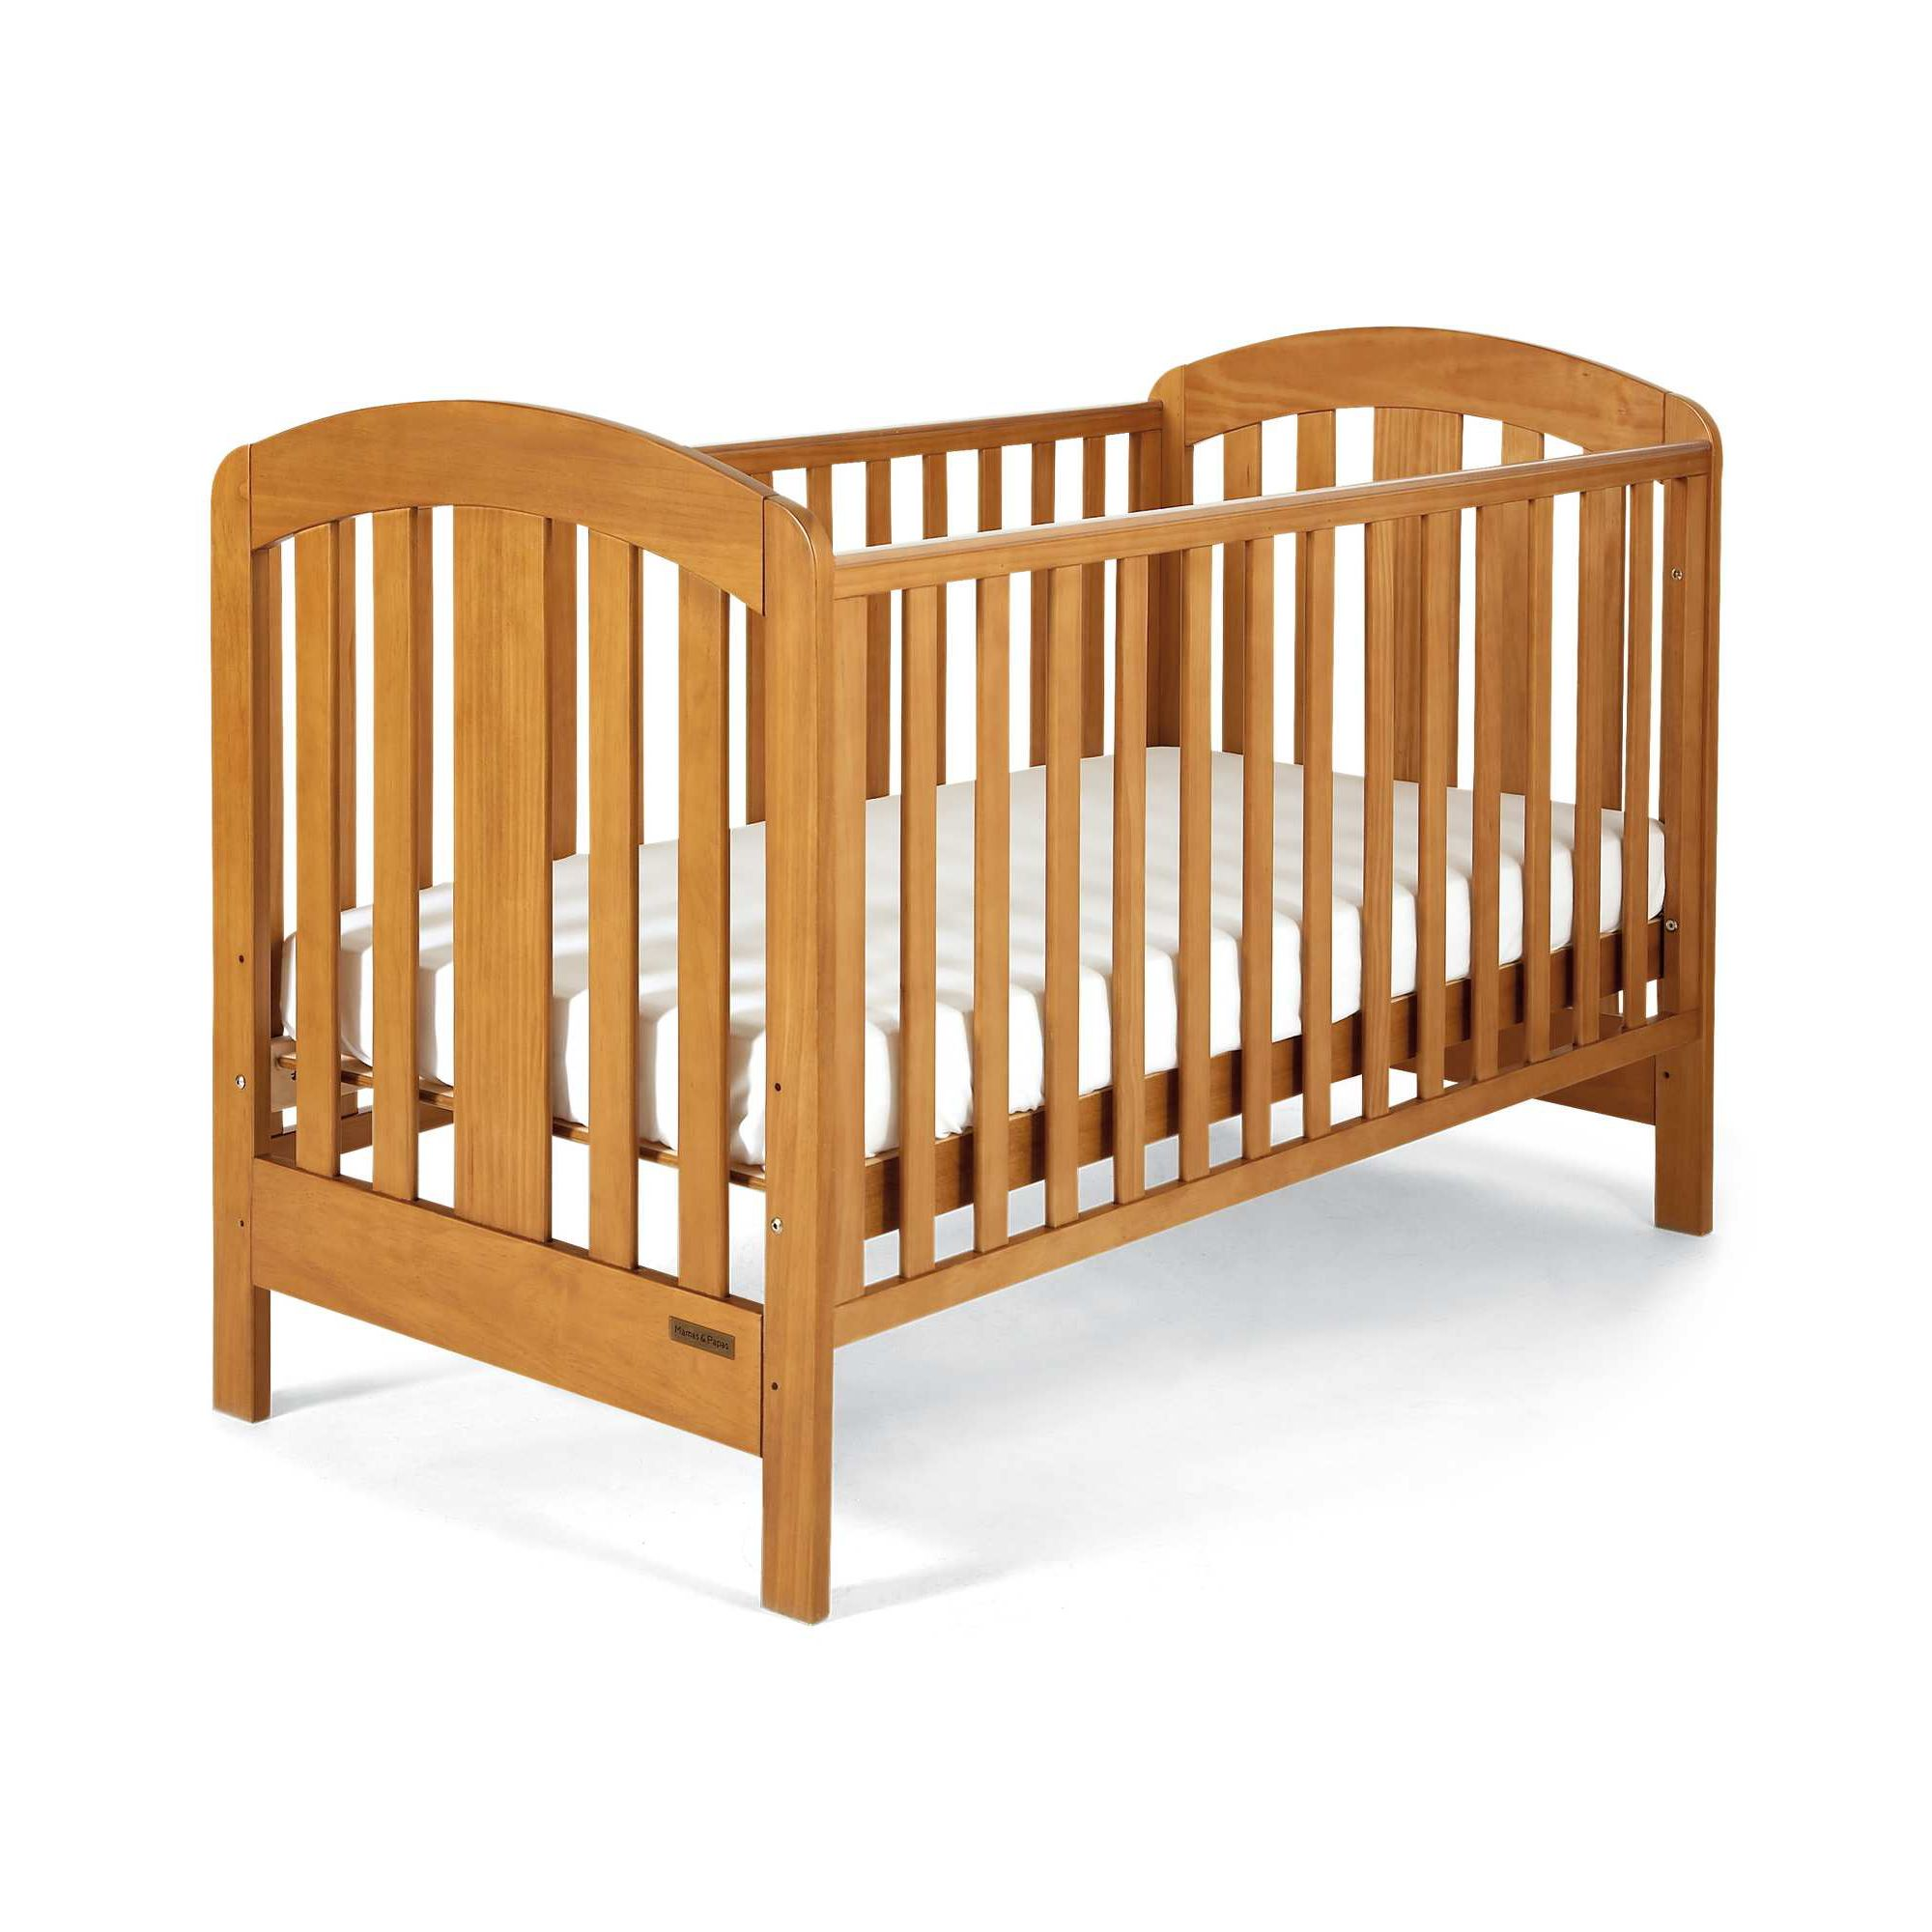 nursery furniture With a new arrival on the way, preparing the nursery can be an exciting and fulfilling nesting task. From cot beds to changing tables, we have all the nursery furniture you'll need to make baby feel at home – and to make caring for them a little easier for you.